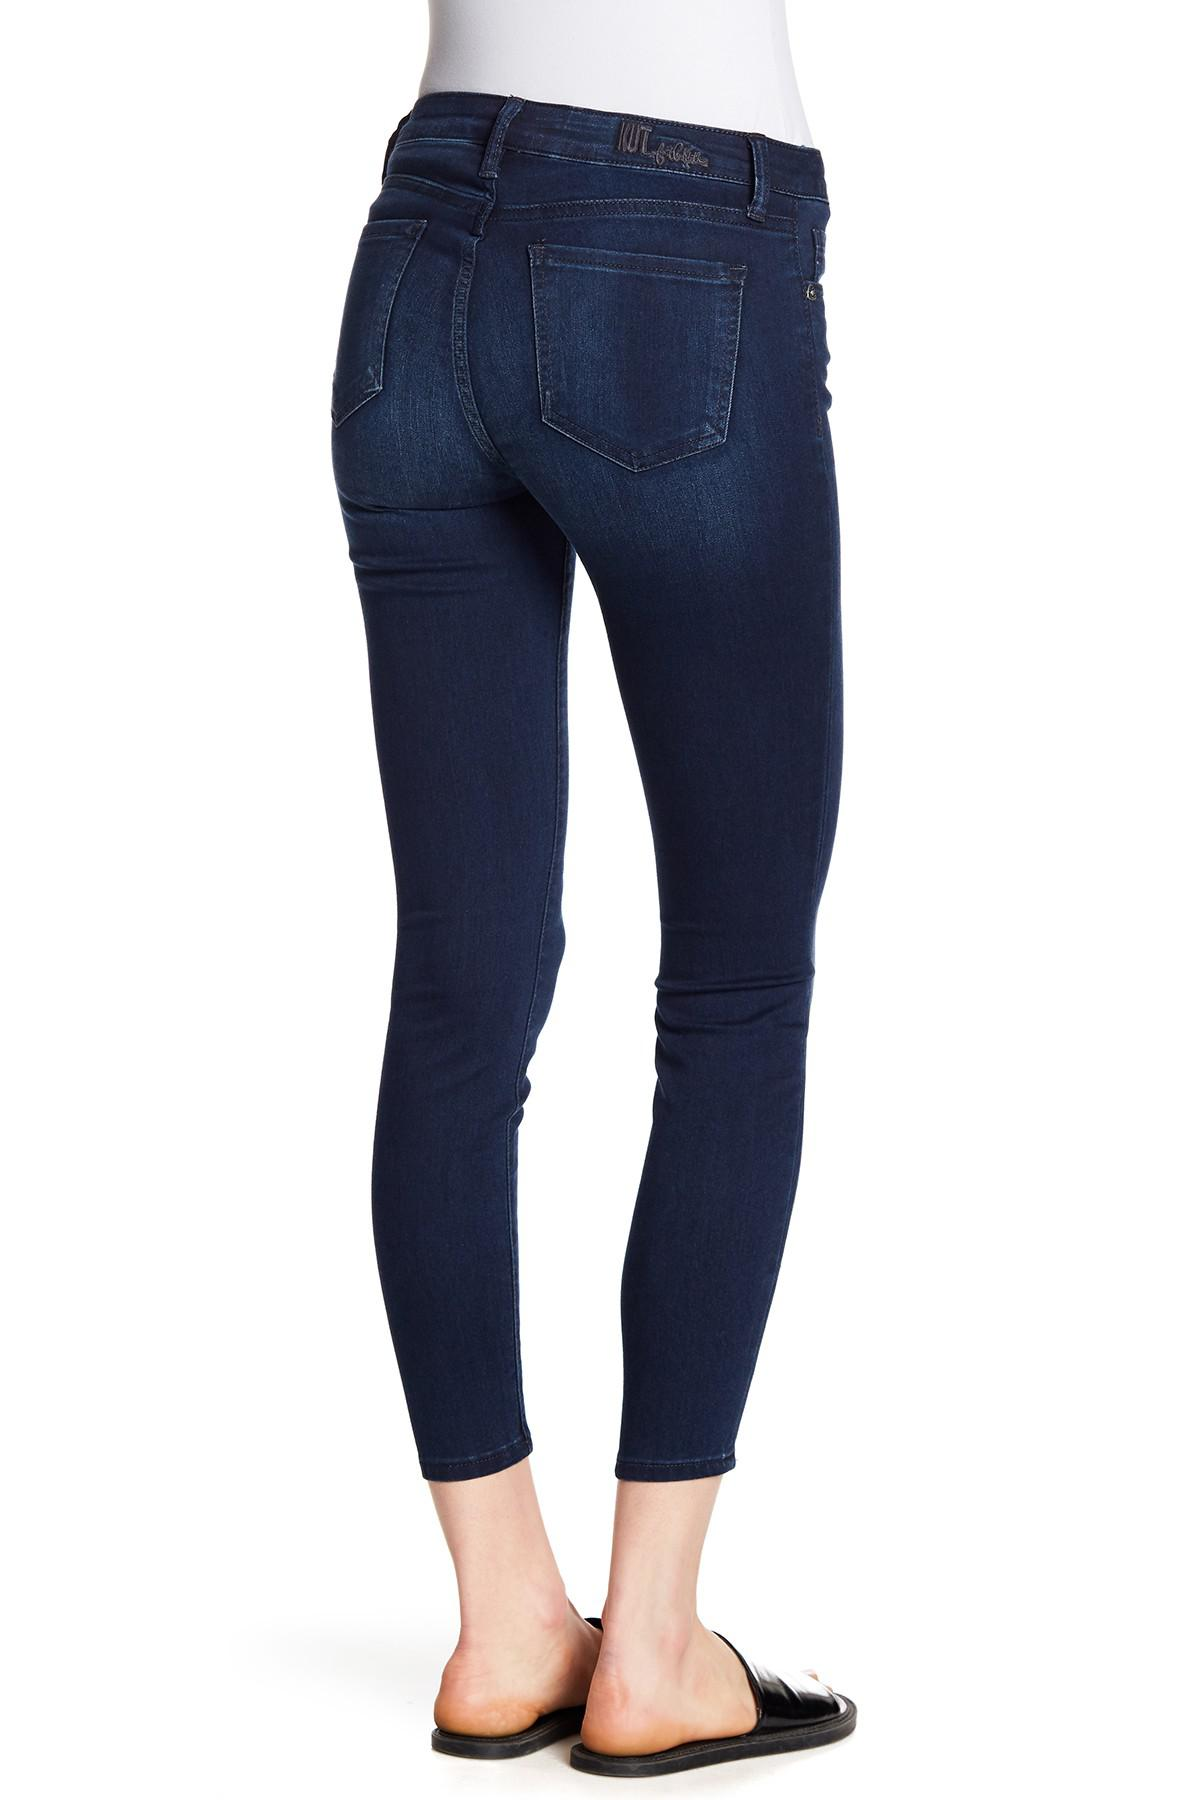 98c57ee24ee Kut From The Kloth Dakota Skinny Ankle Jeans in Blue - Lyst